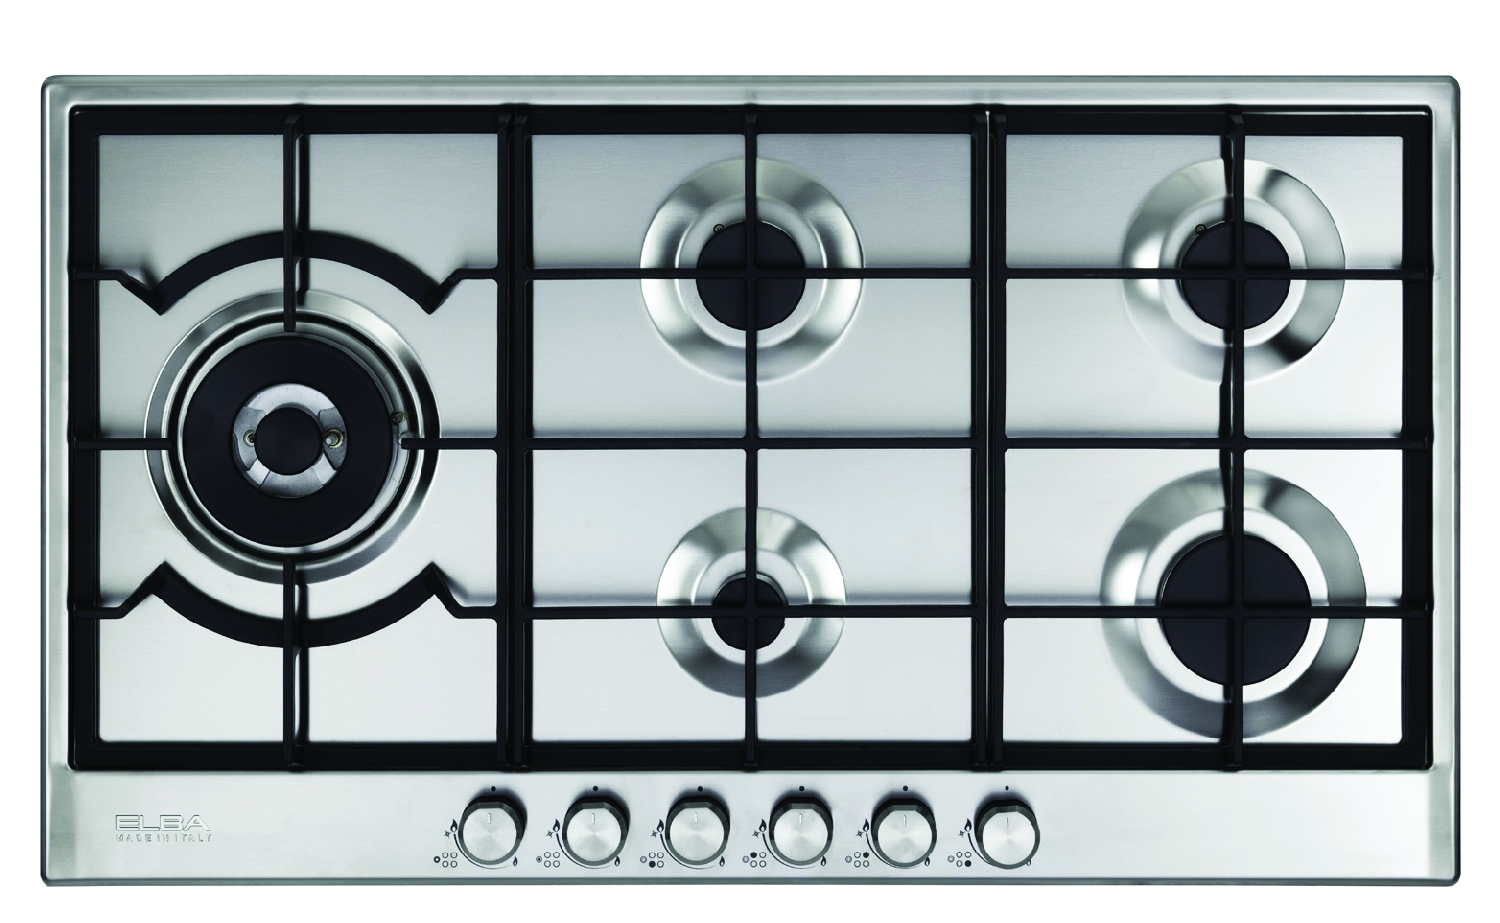 elba-elio-new-design-95-565-5-gas-burners-cooker-top